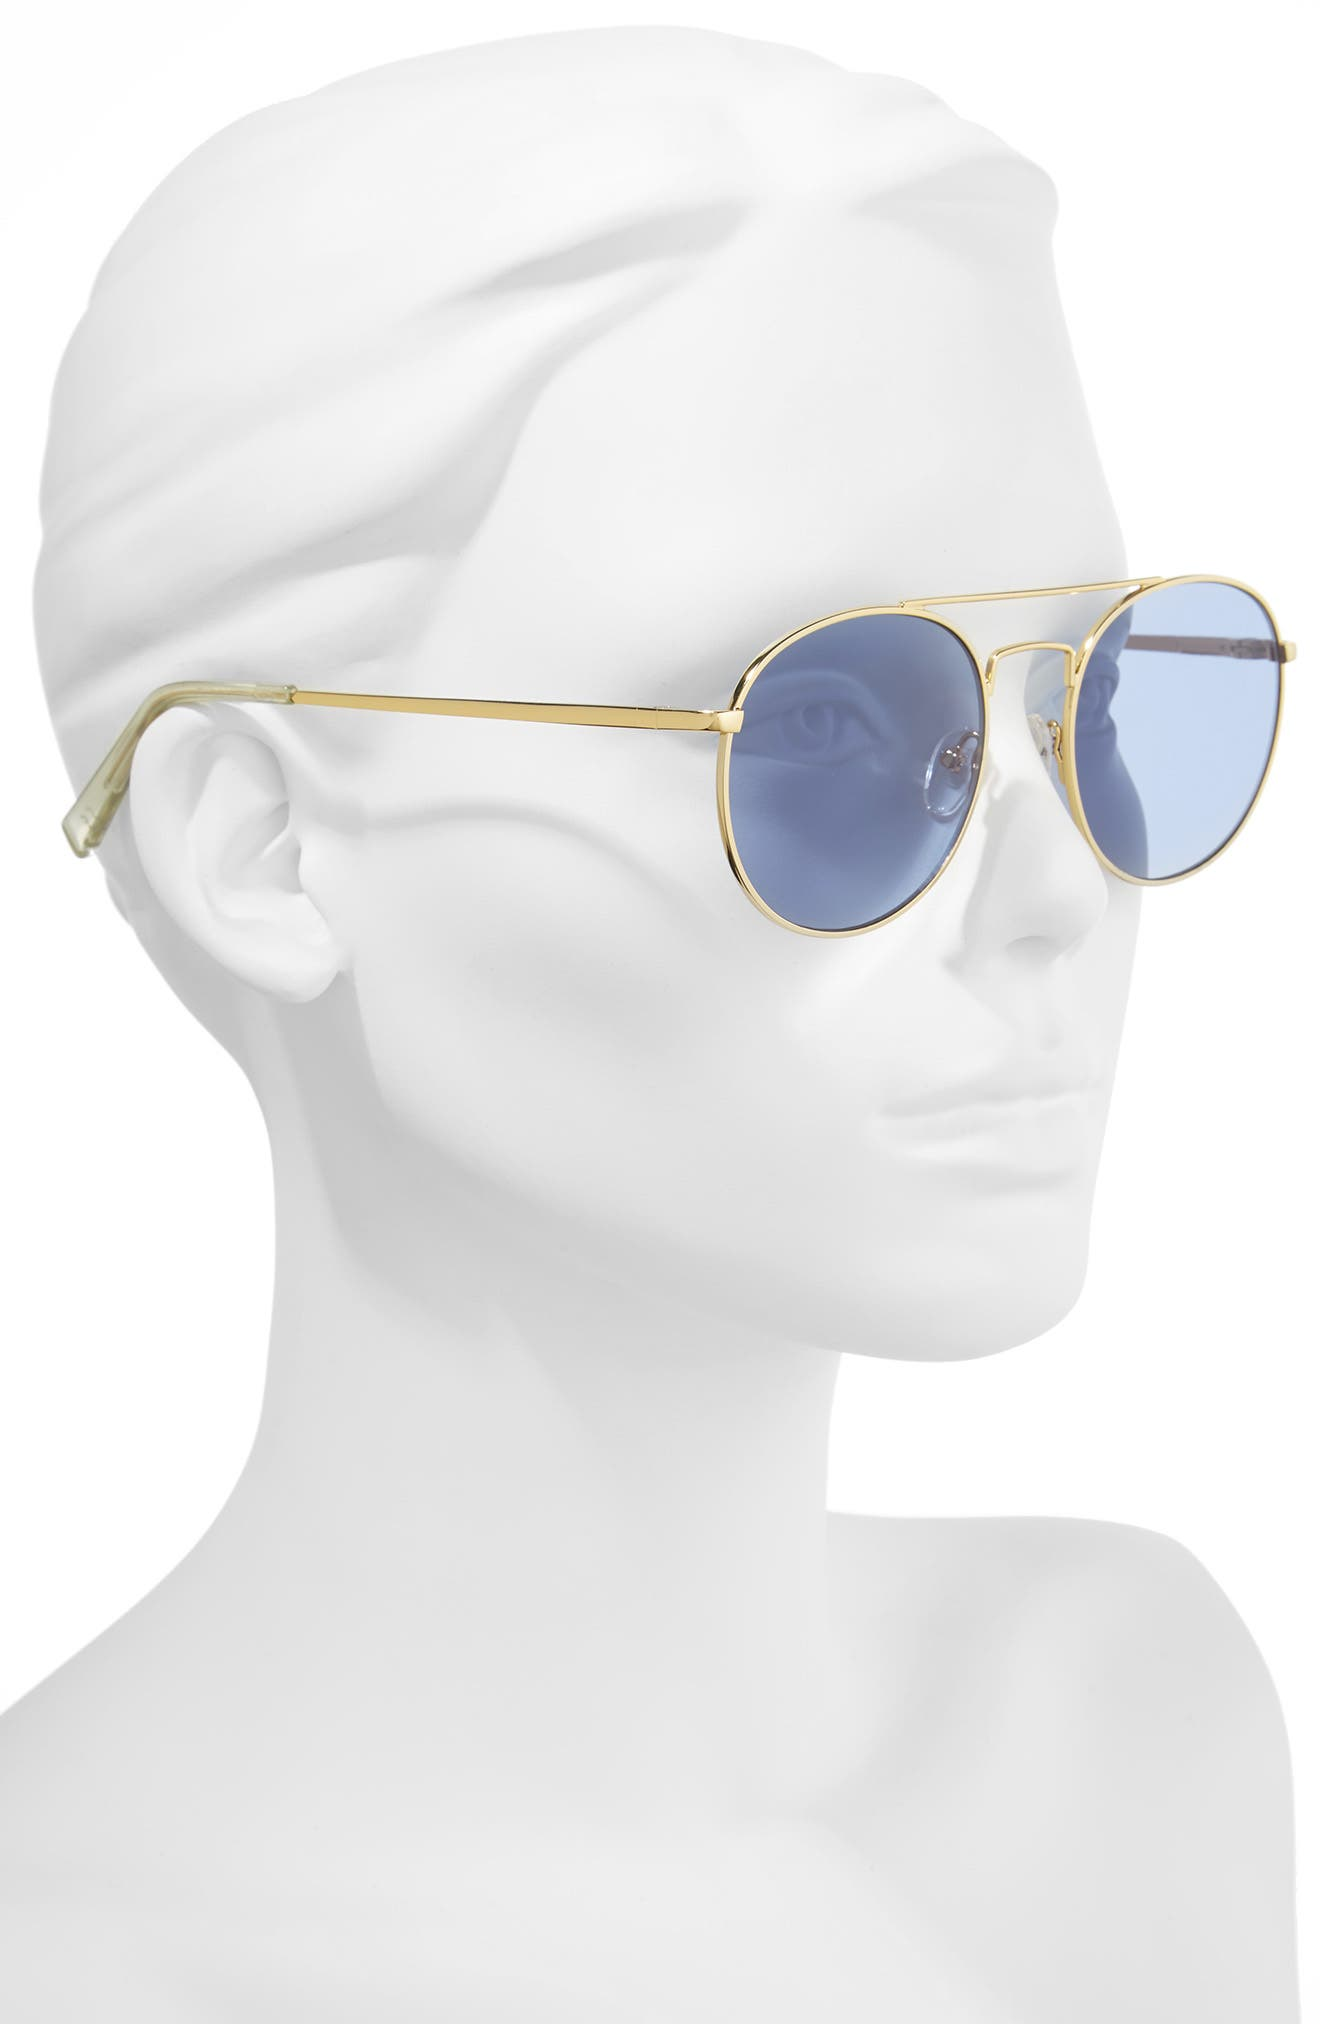 Revolution 53mm Aviator Sunglasses,                             Alternate thumbnail 2, color,                             Bright Gold